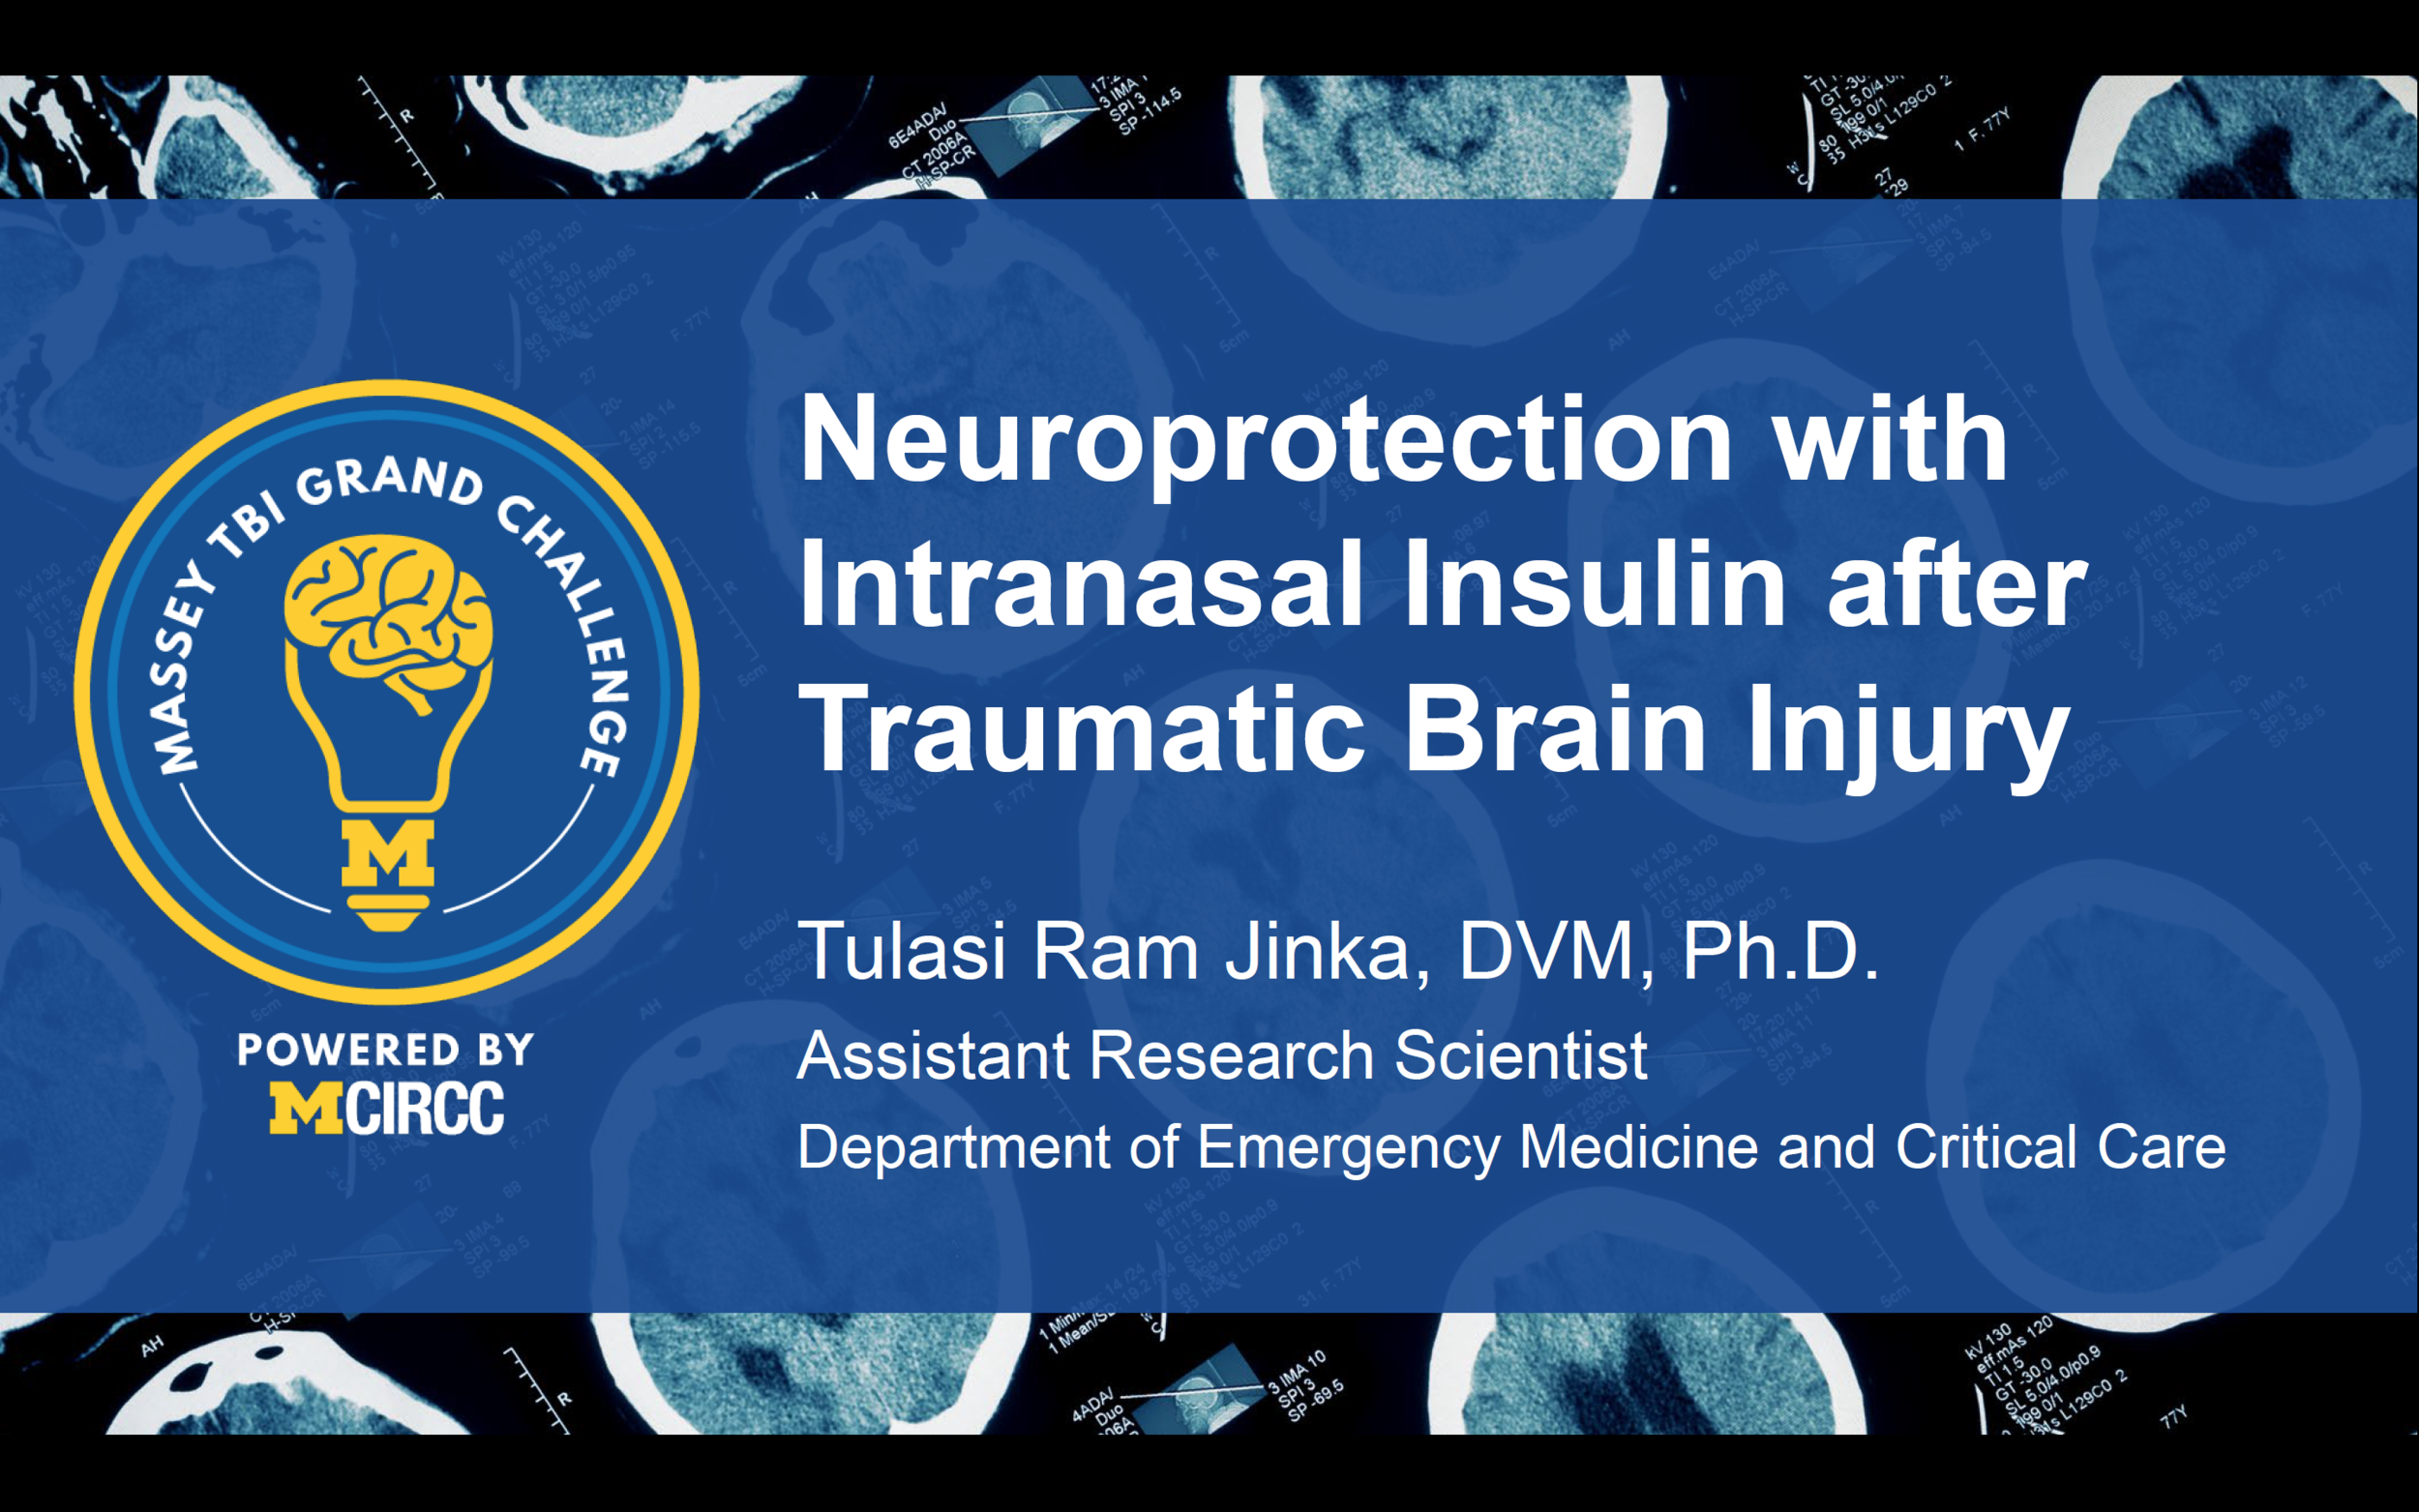 The intranasal delivery route makes it feasible for paramedics or combat medics to initiate therapy for TBI within minutes of injury. Intranasal Insulin therapy is already in clinical trials for Alzheimer's disease and stroke. The group sought to demonstrate the neuroprotective effect of early high-dose intranasal insulin. They proposed a rigorous translational approach to evaluate and optimize a novel drug delivery strategy that can be initiated soon after injury by non-medical providers as a highly effective and low-cost neuroprotective treatment for TBI patients.